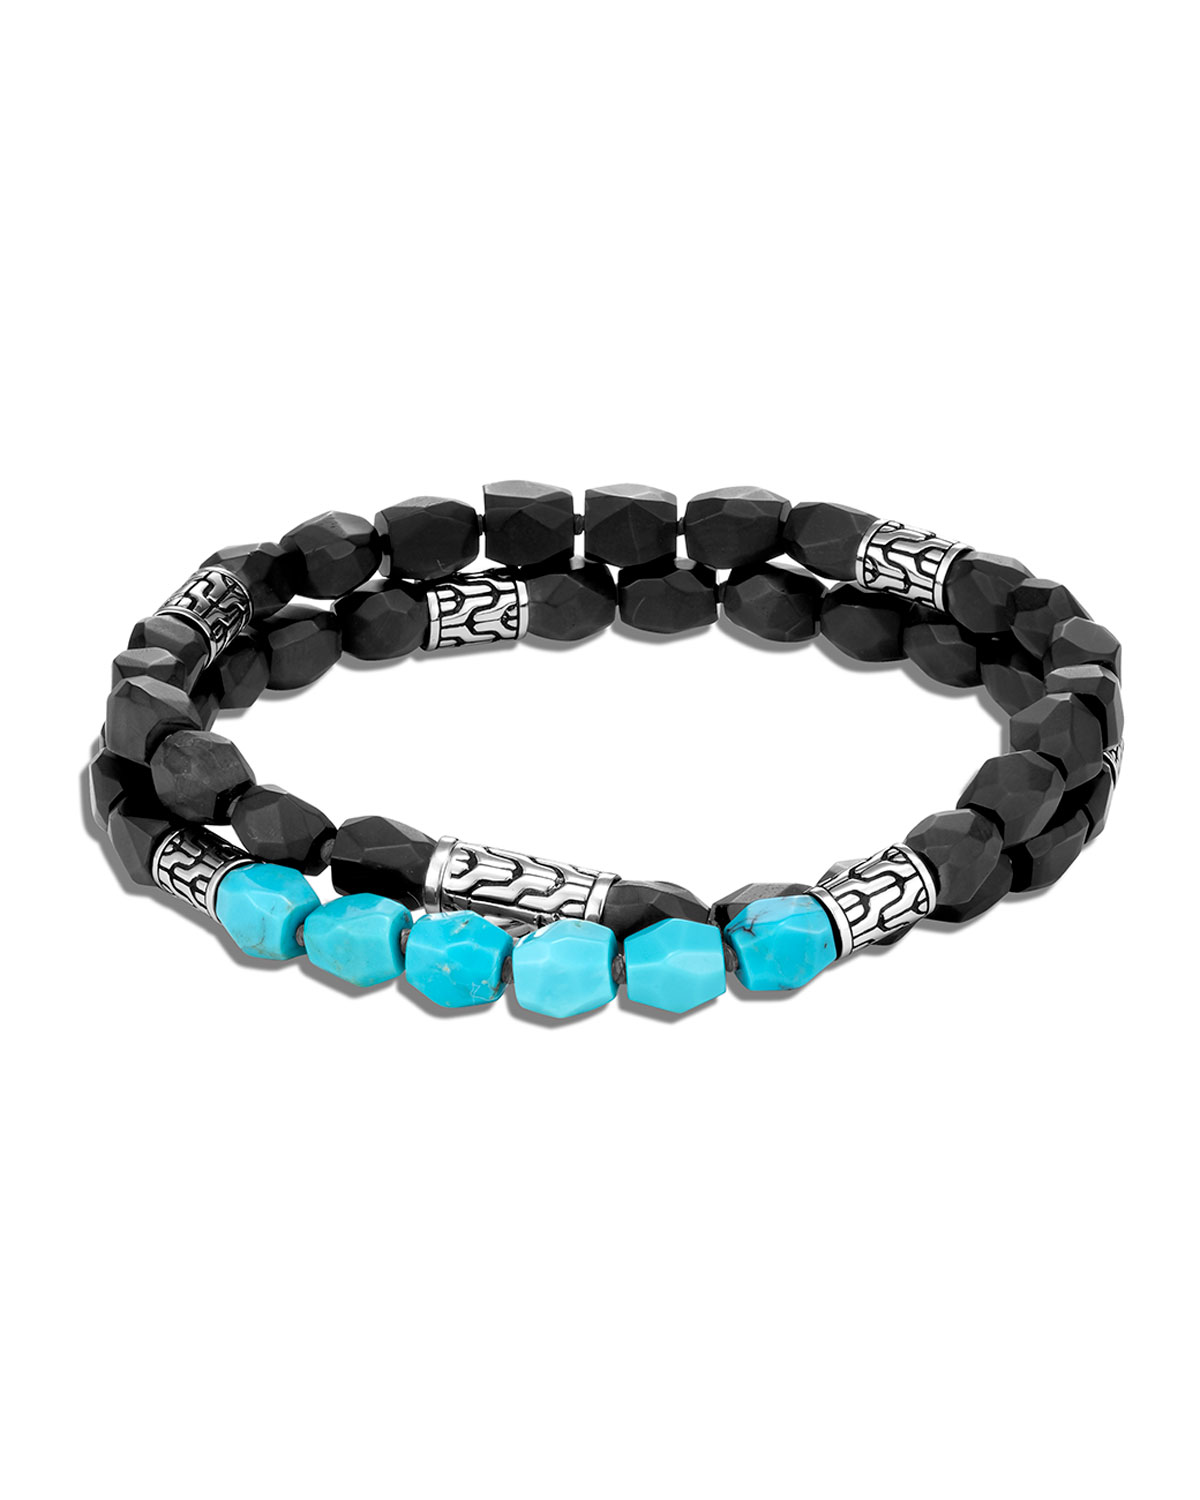 John Hardy Men's Classic Chain Double-Wrap Bead Bracelet with Turquoise & Onyx, Size M-L